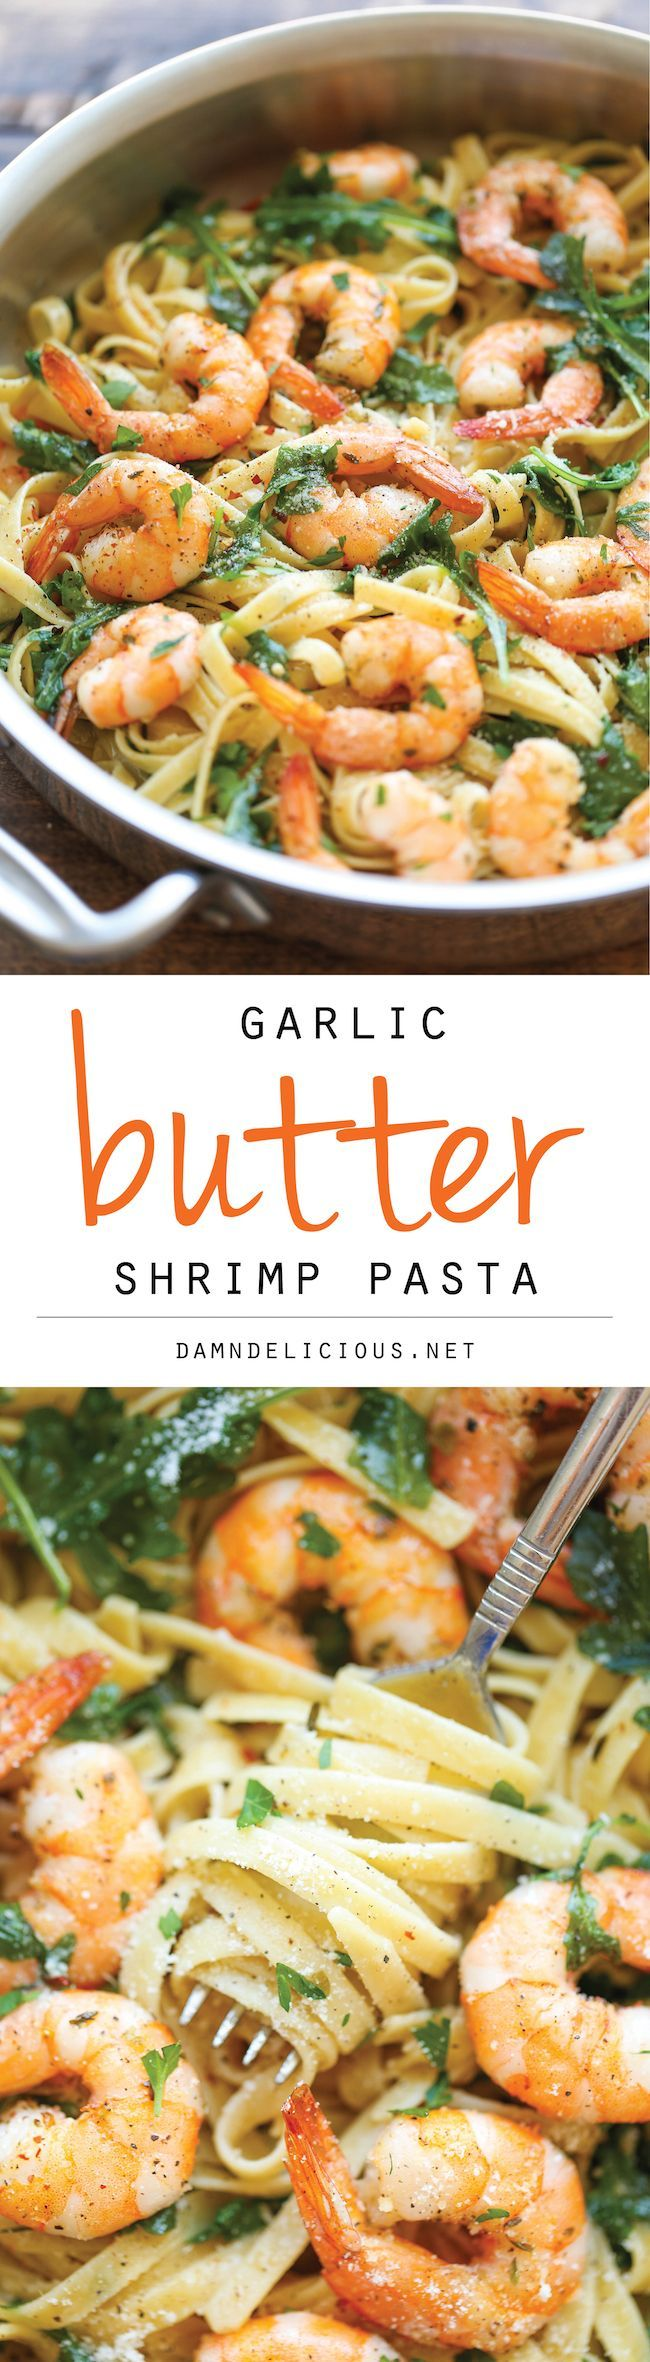 Garlic Butter Shrimp Pasta - An easy peasy pasta dish that's simple, flavorful and incredibly hearty. And all you need is 20 min to whip this up! Great Recipe!